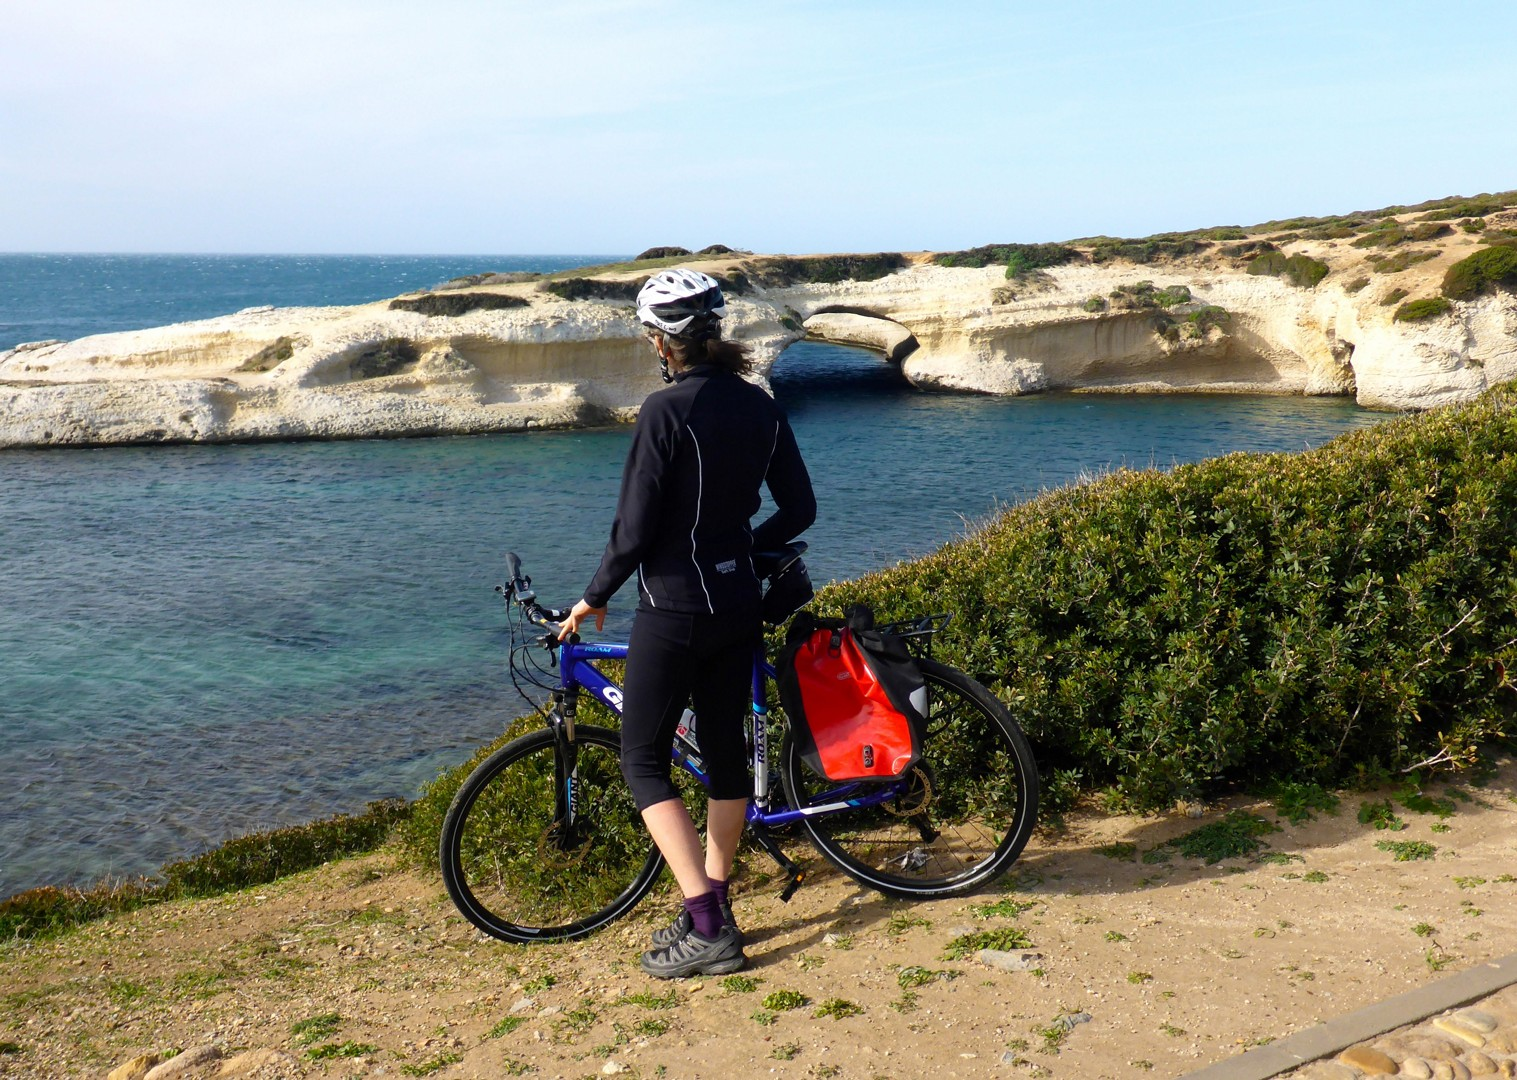 self-guided-leisure-cycling-holiday-gentle-island-cycling-sardinia.jpg - Italy - Sardinia - West Coast Wonders - Self-Guided Leisure Cycling Holiday - Italia Leisure and Family Cycling